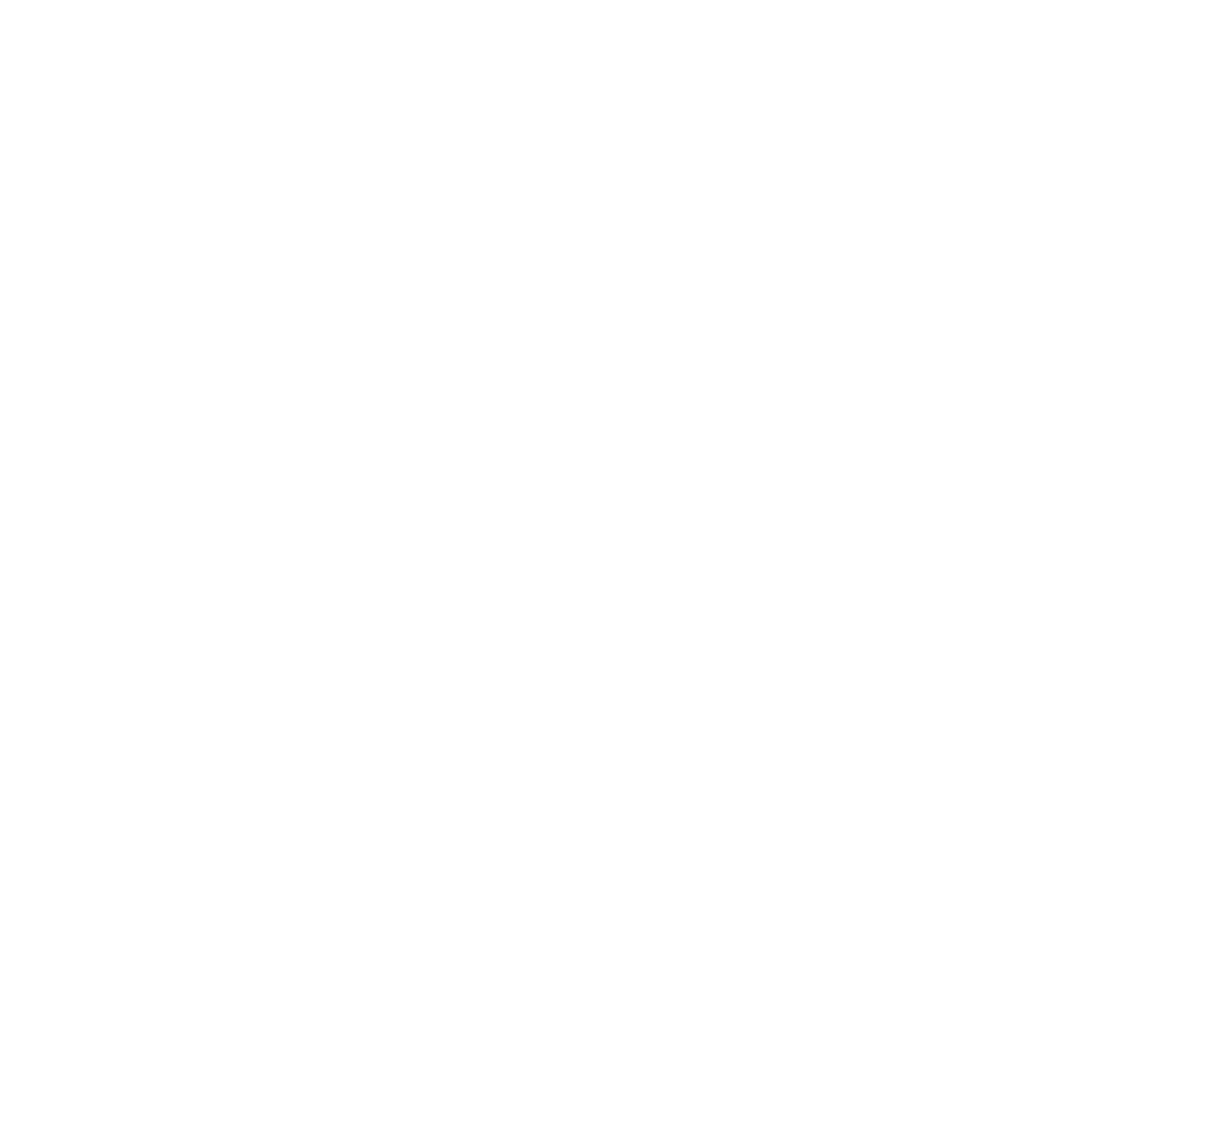 theLodge.space